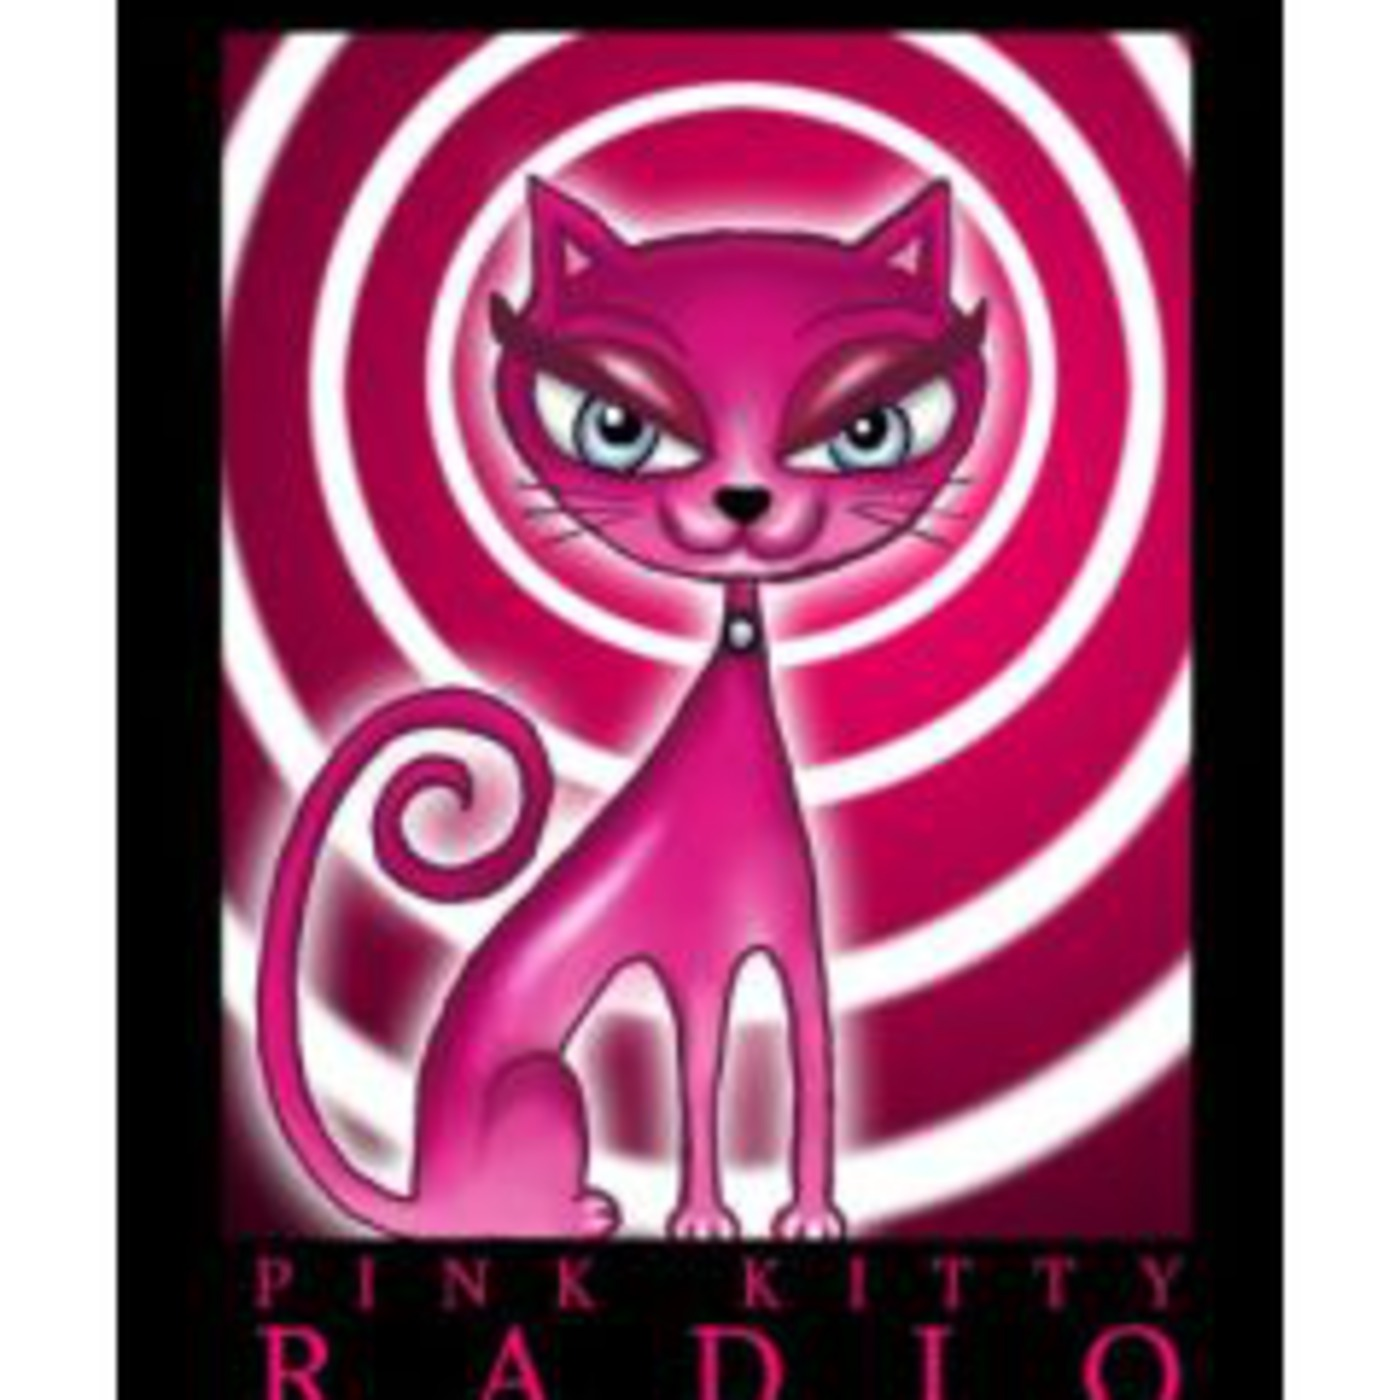 Pink Kitty Radio